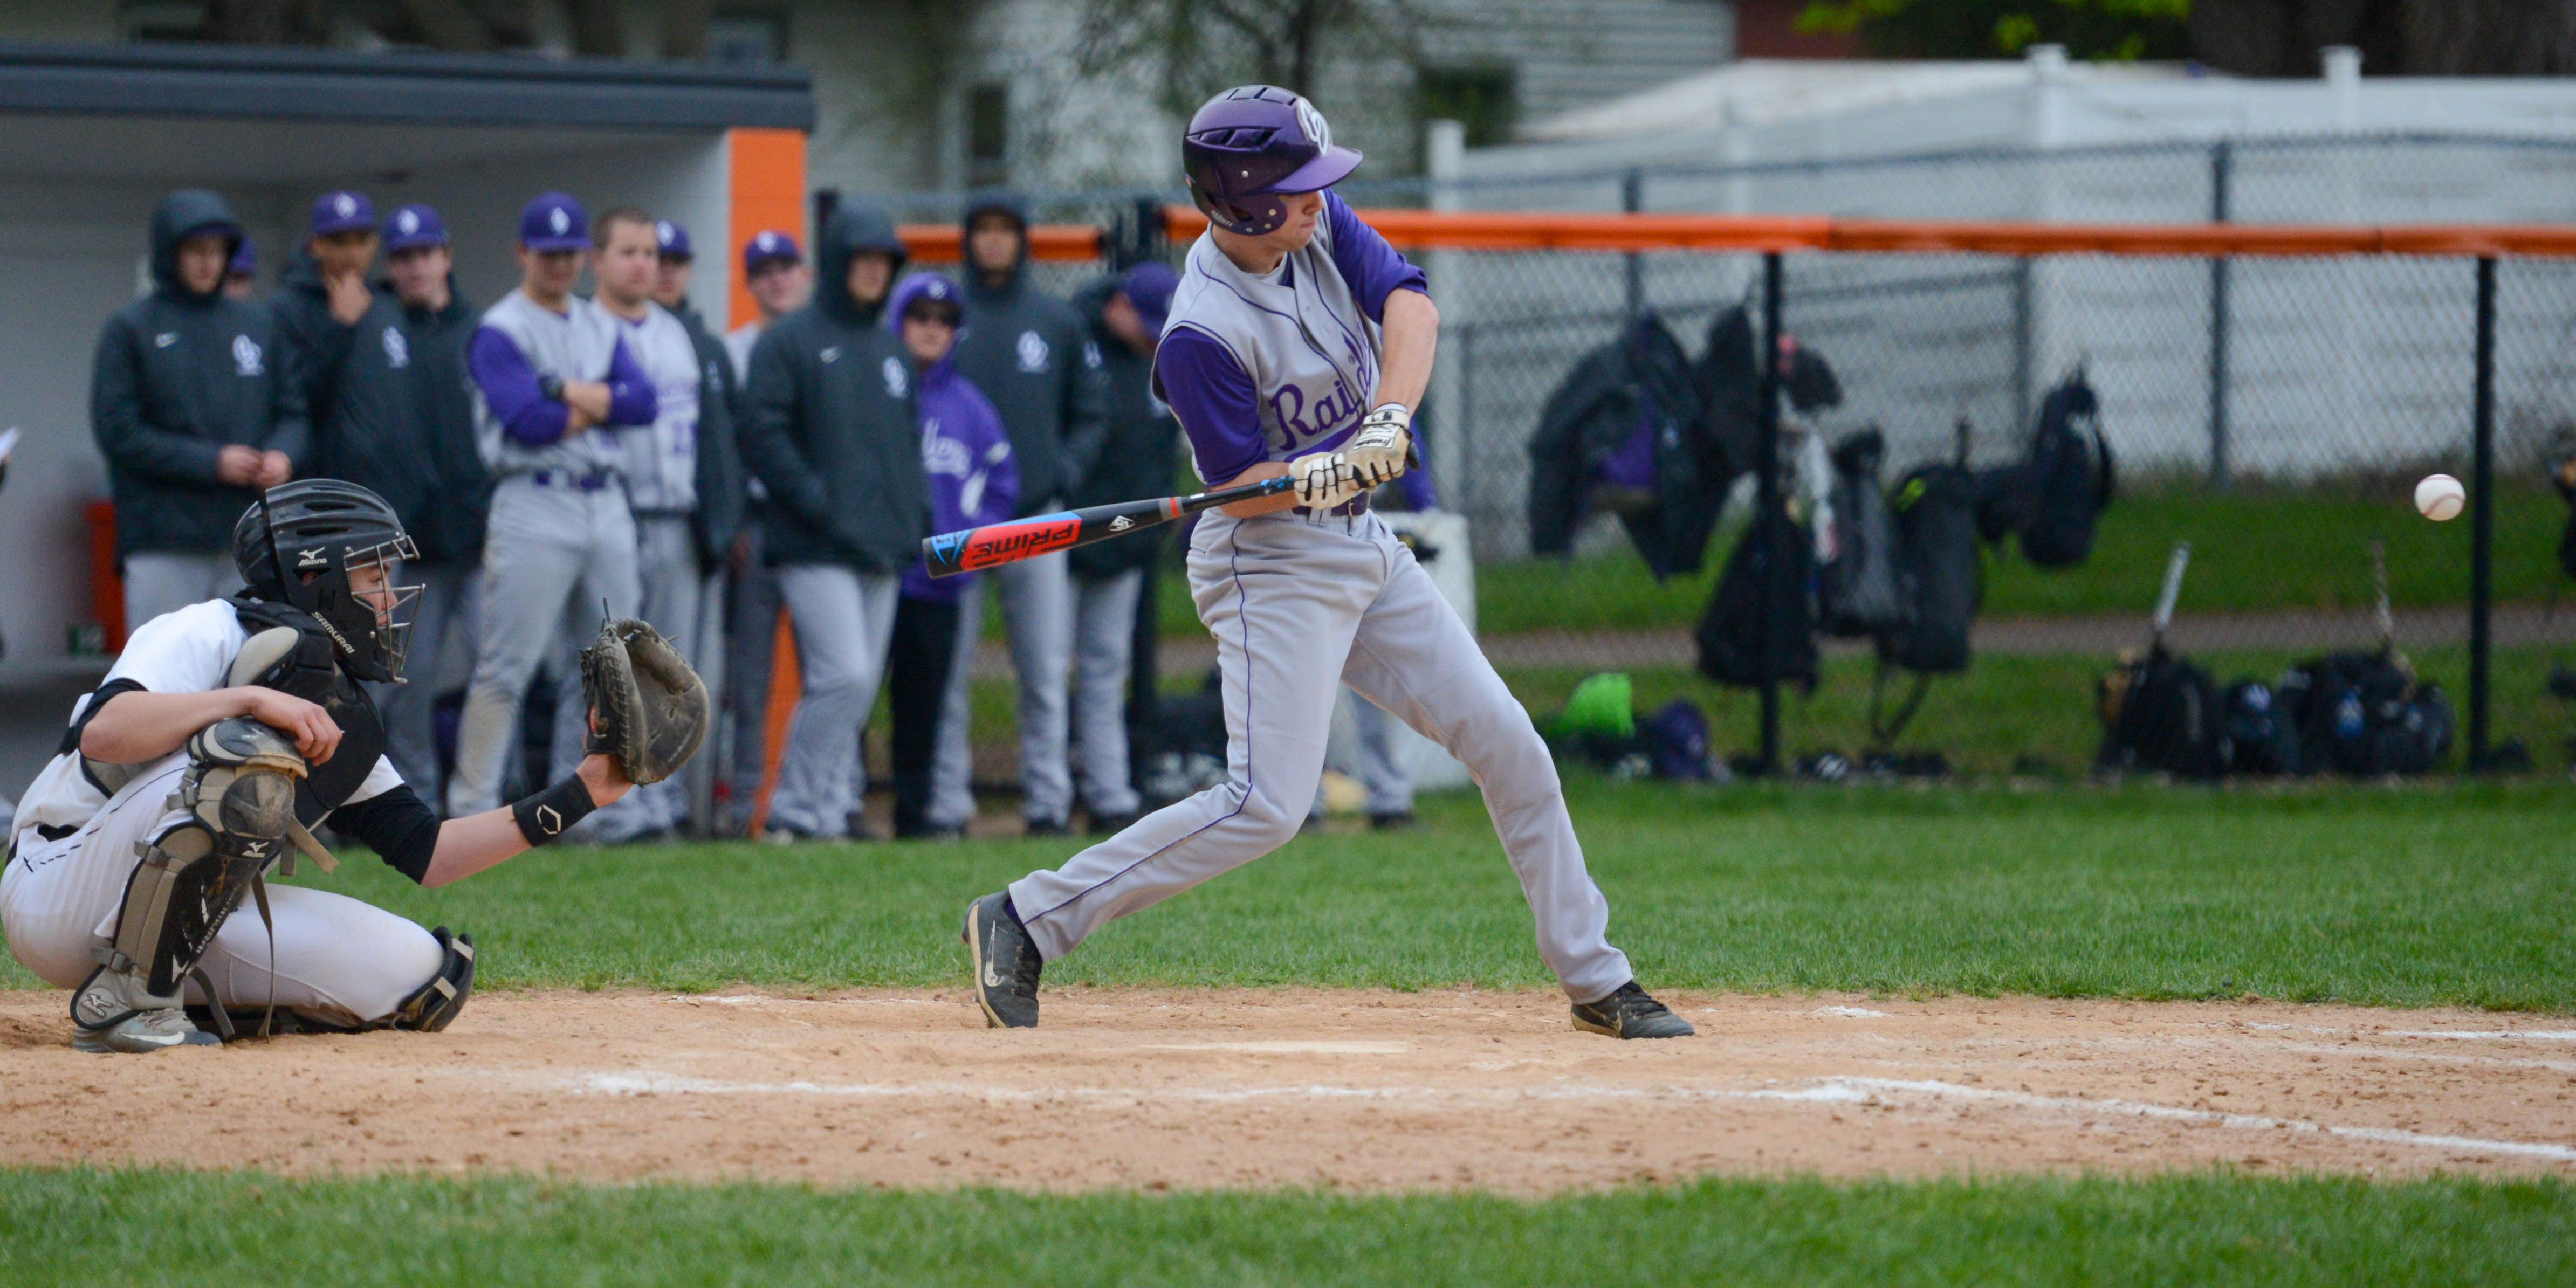 Cretin-Derham Hall shortstop Michael Caron (6) swings at a pitch against White Bear Lake. Caron had 2 RBI in the Raiders' 12-1 win over the Bears. Photo by Carter Jones, SportsEngine